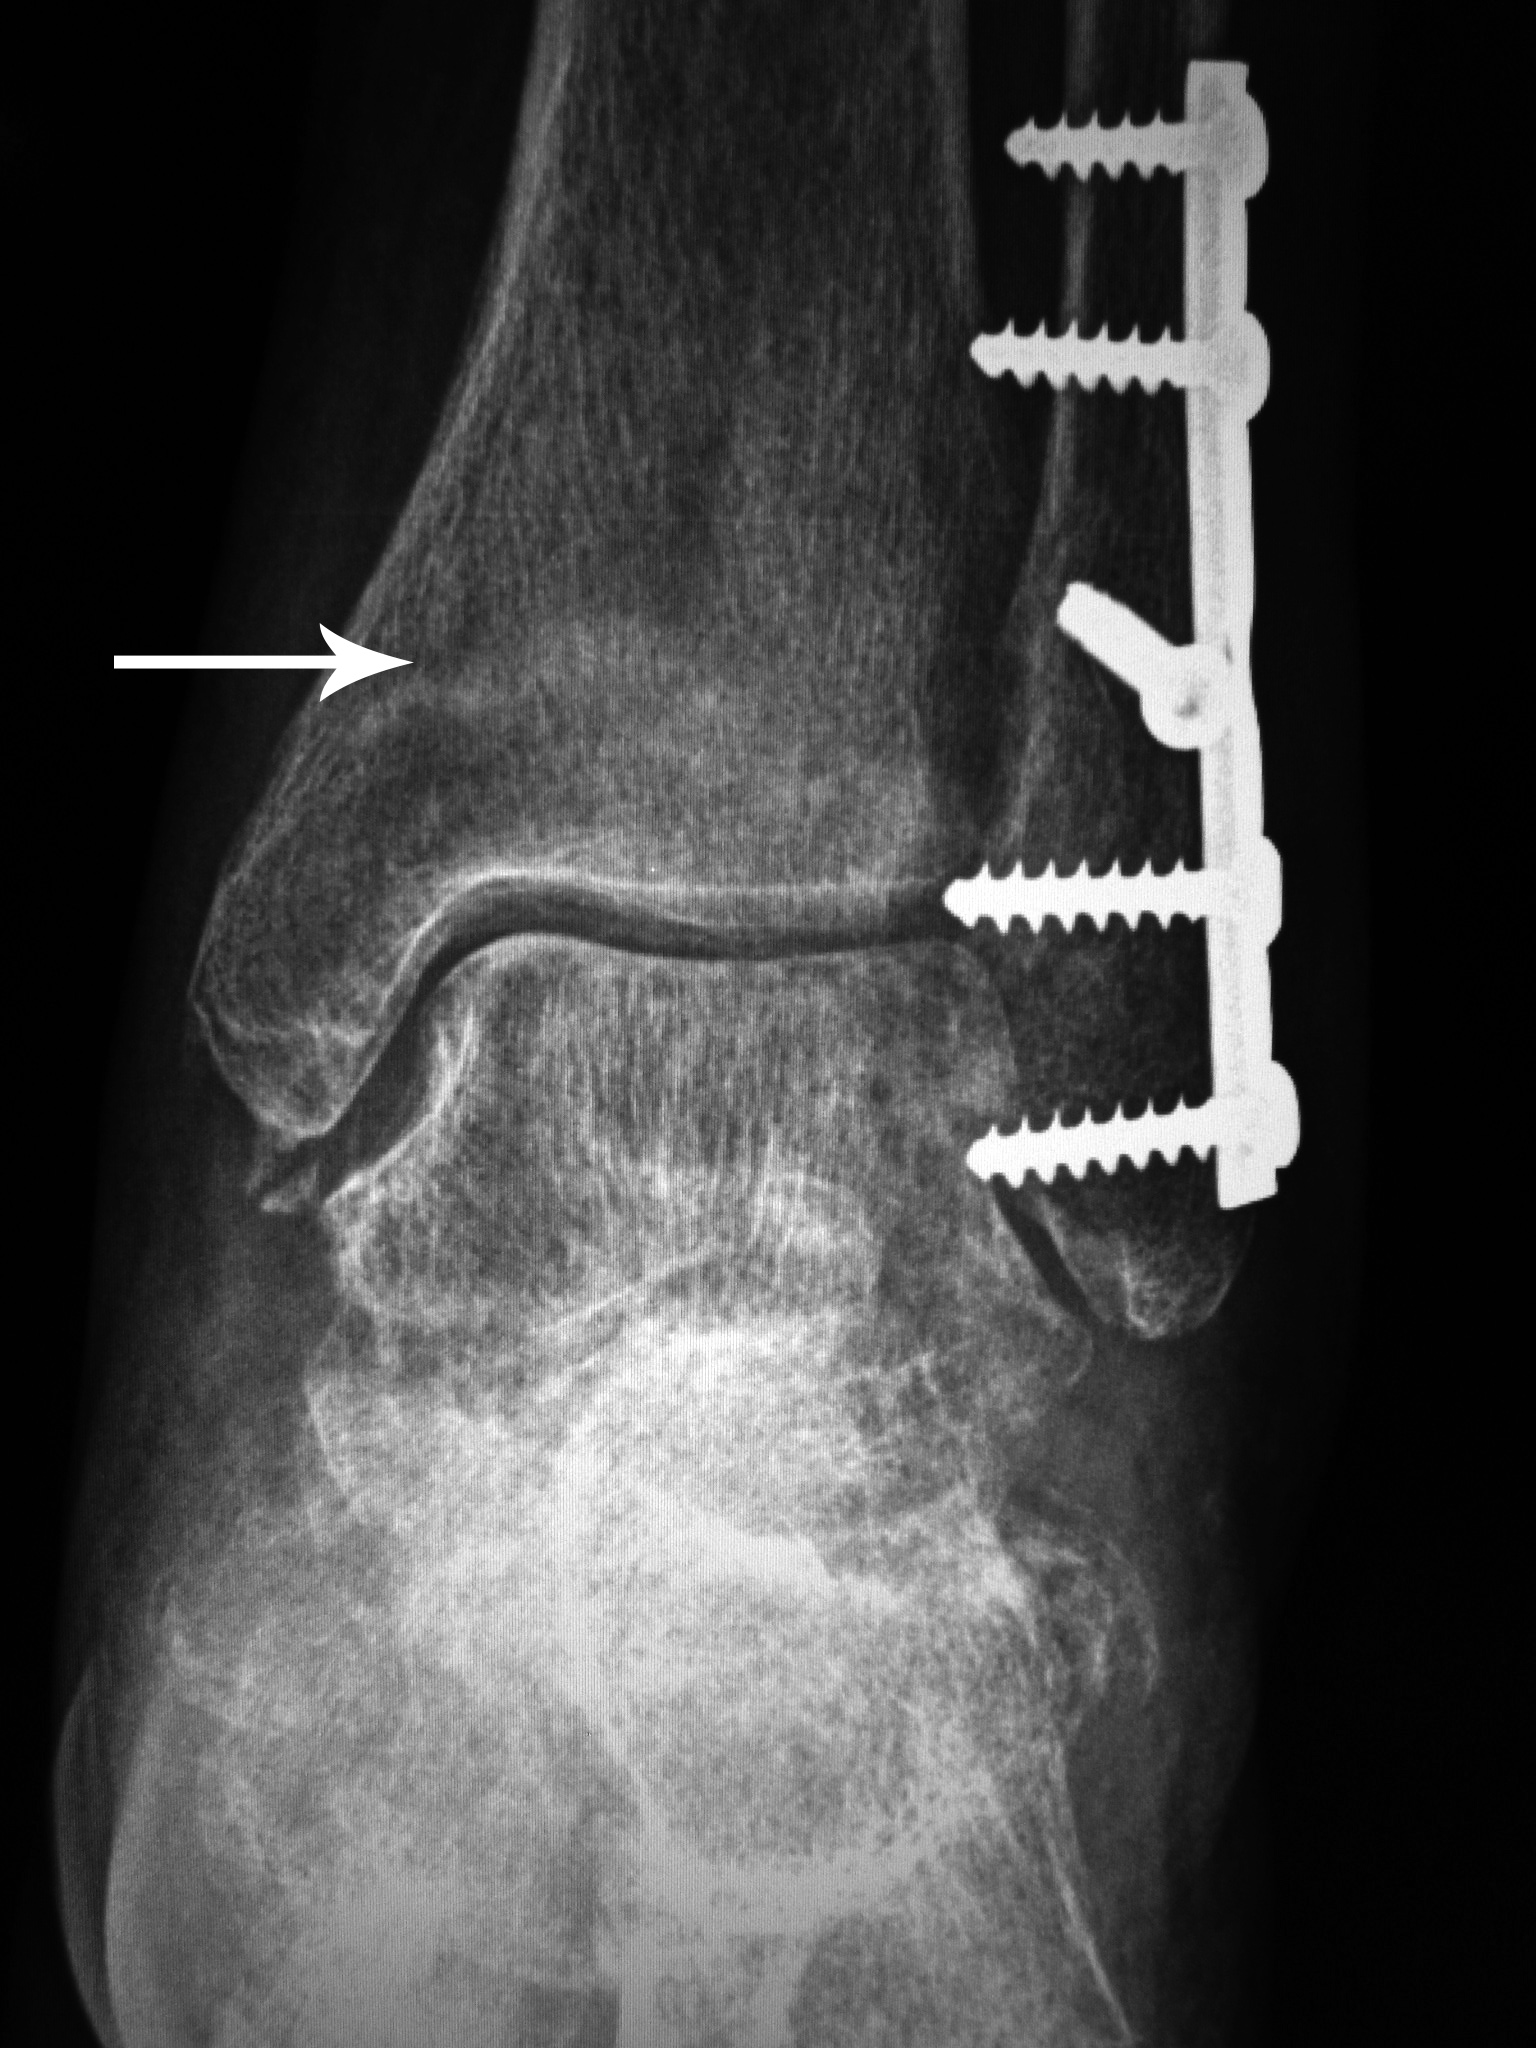 Complications of Fracture Fixation: a gallery